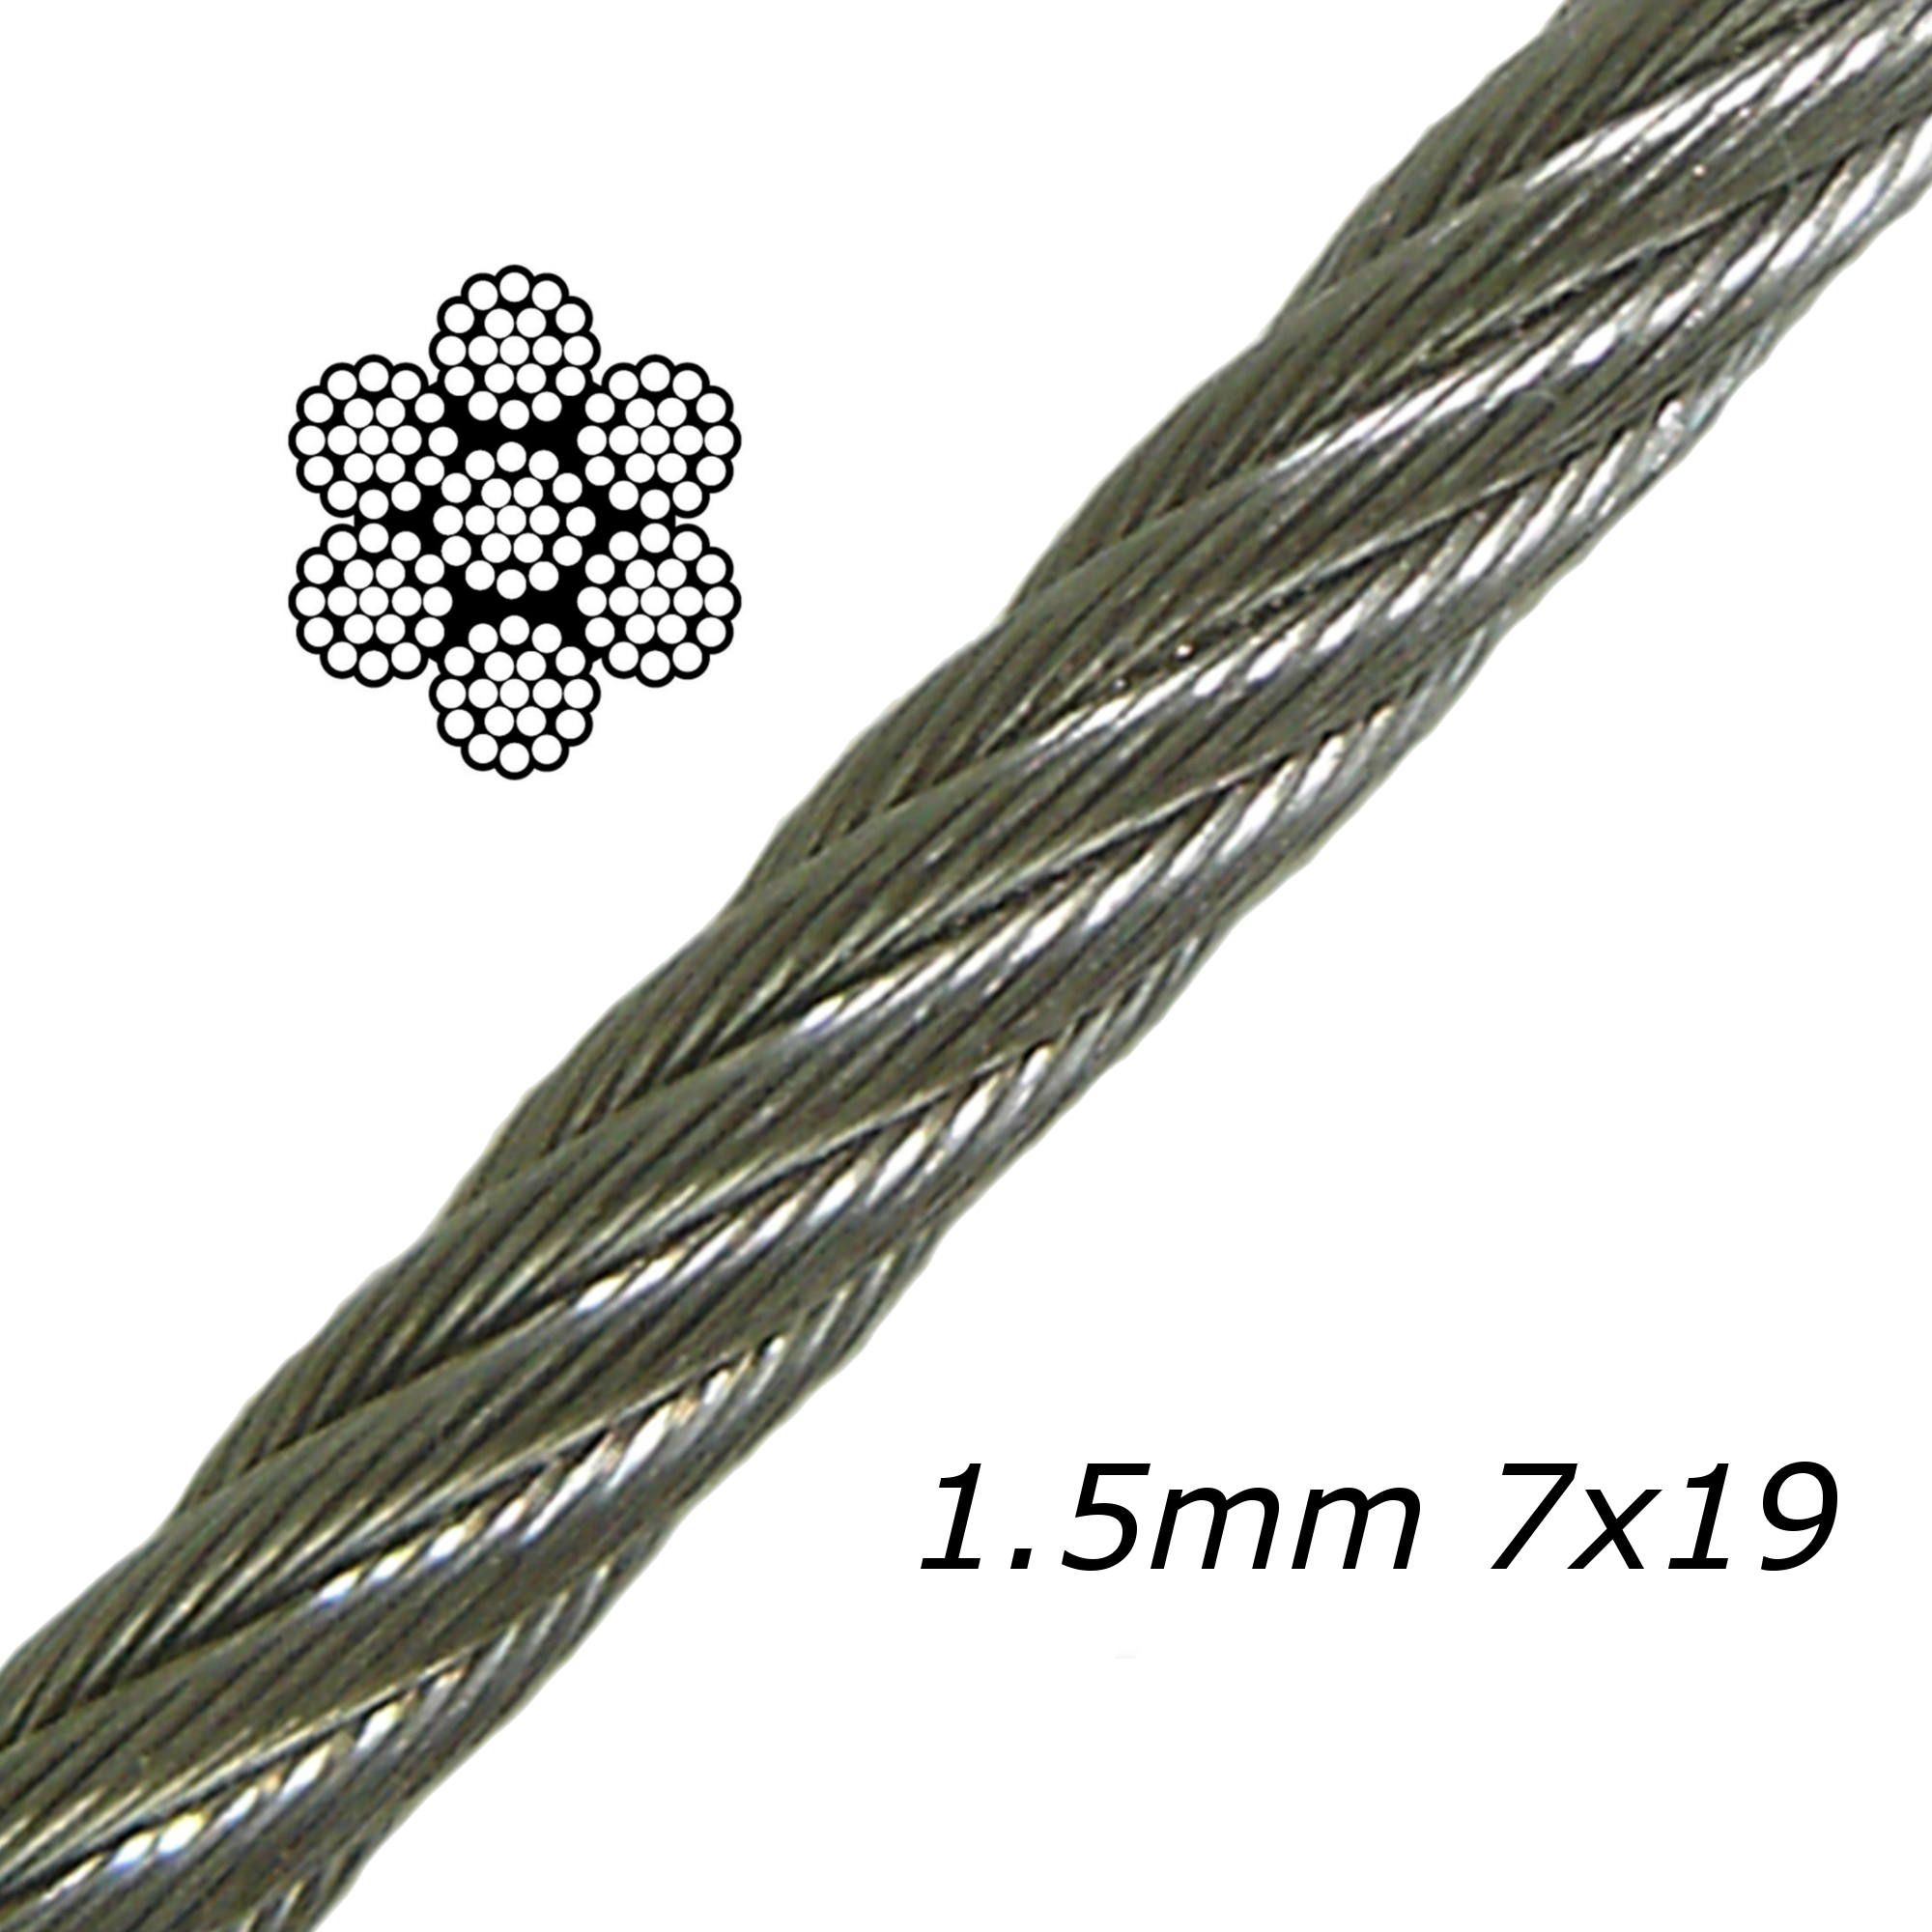 1.5mm Stainless Steel Cable 7x19